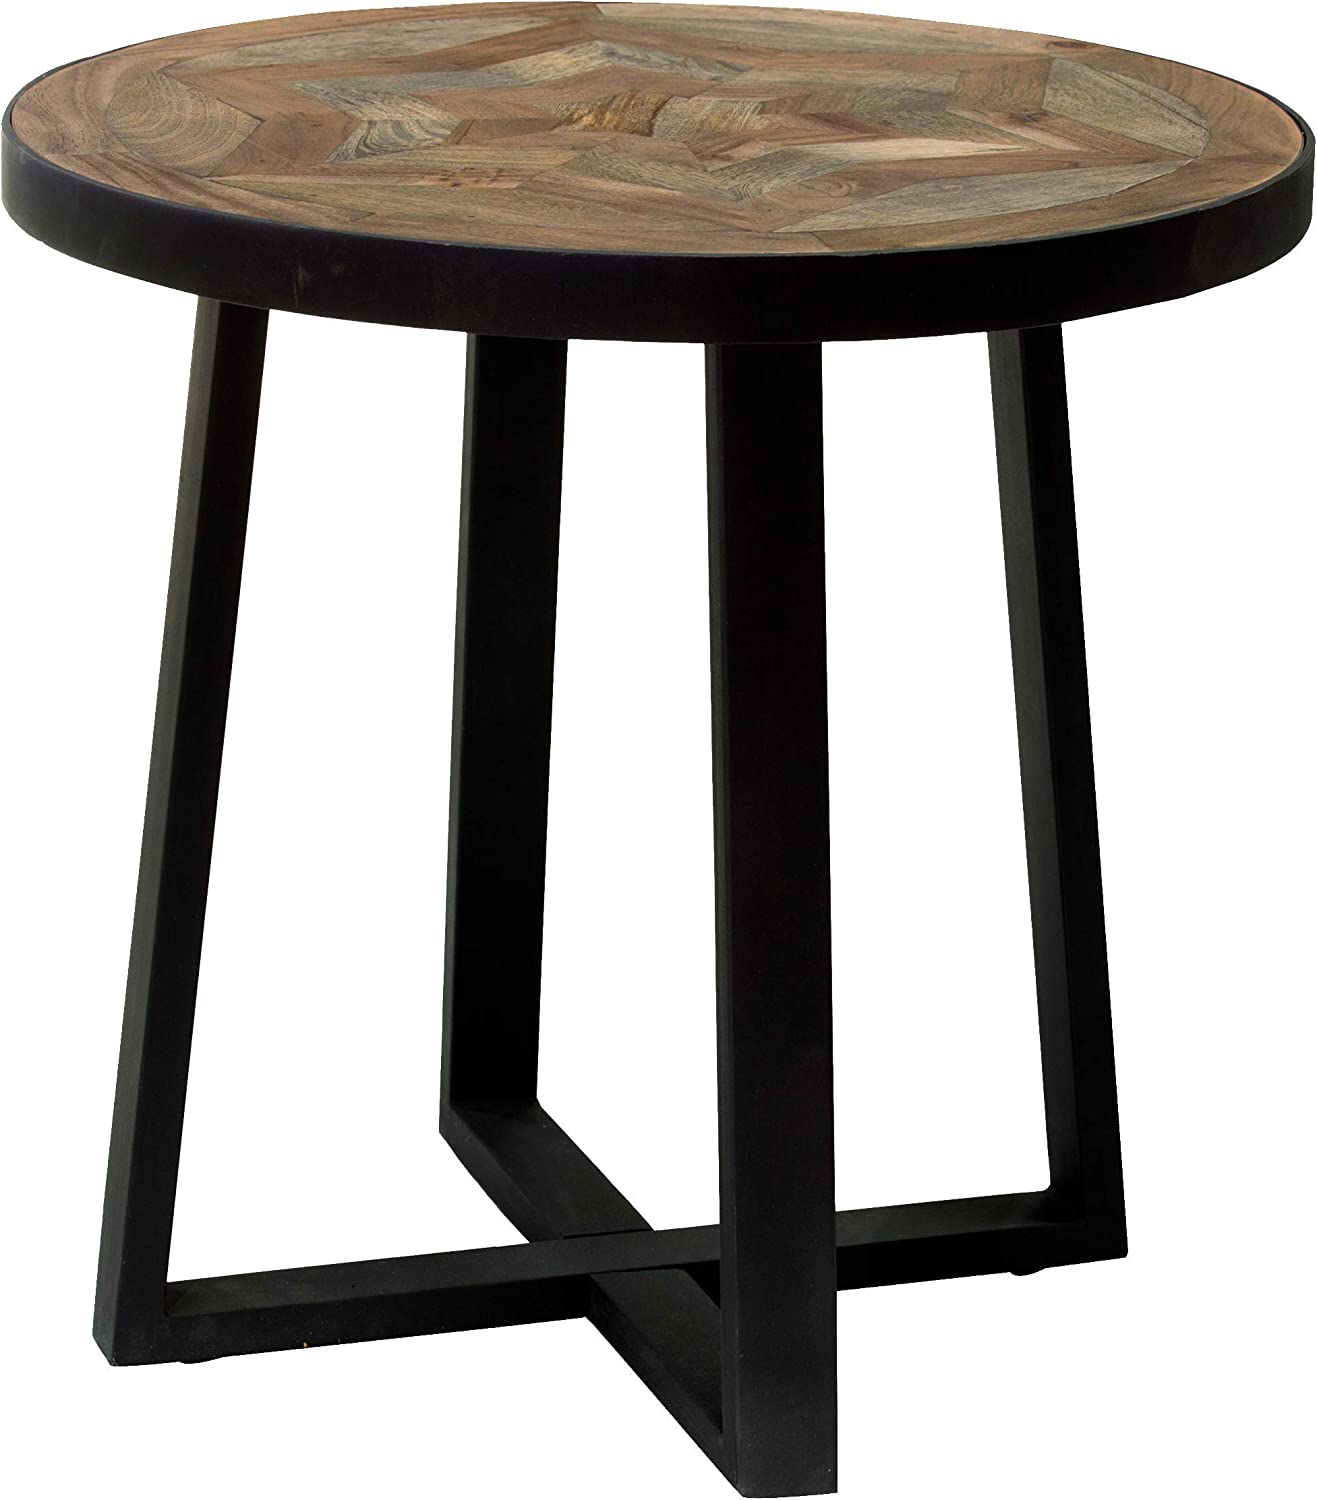 Amazon Com Round Side Table With Mango And Acacia Wood Inlay Star Pattern Metal Base Kitchen Dining Mango wood will only need less finish due to its fine grain. round side table with mango and acacia